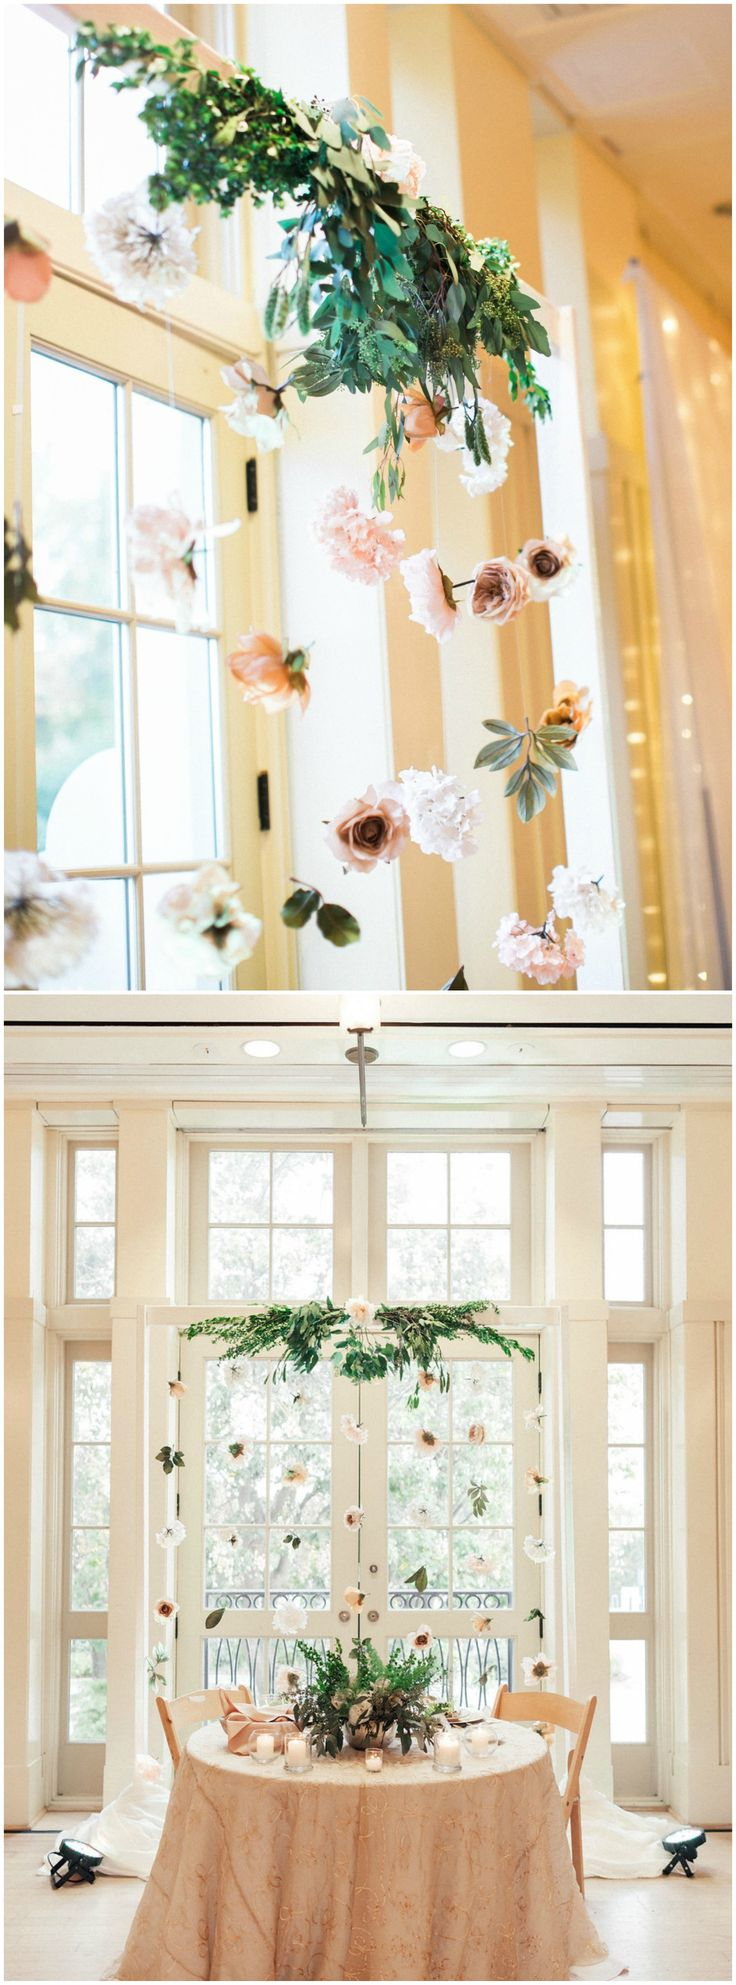 Indoor wedding reception, sweetheart table, suspended flowers, wedding decor ideas, pink tablecloth, follow this board for more wedding reception inspiration // Noi Tran Photography